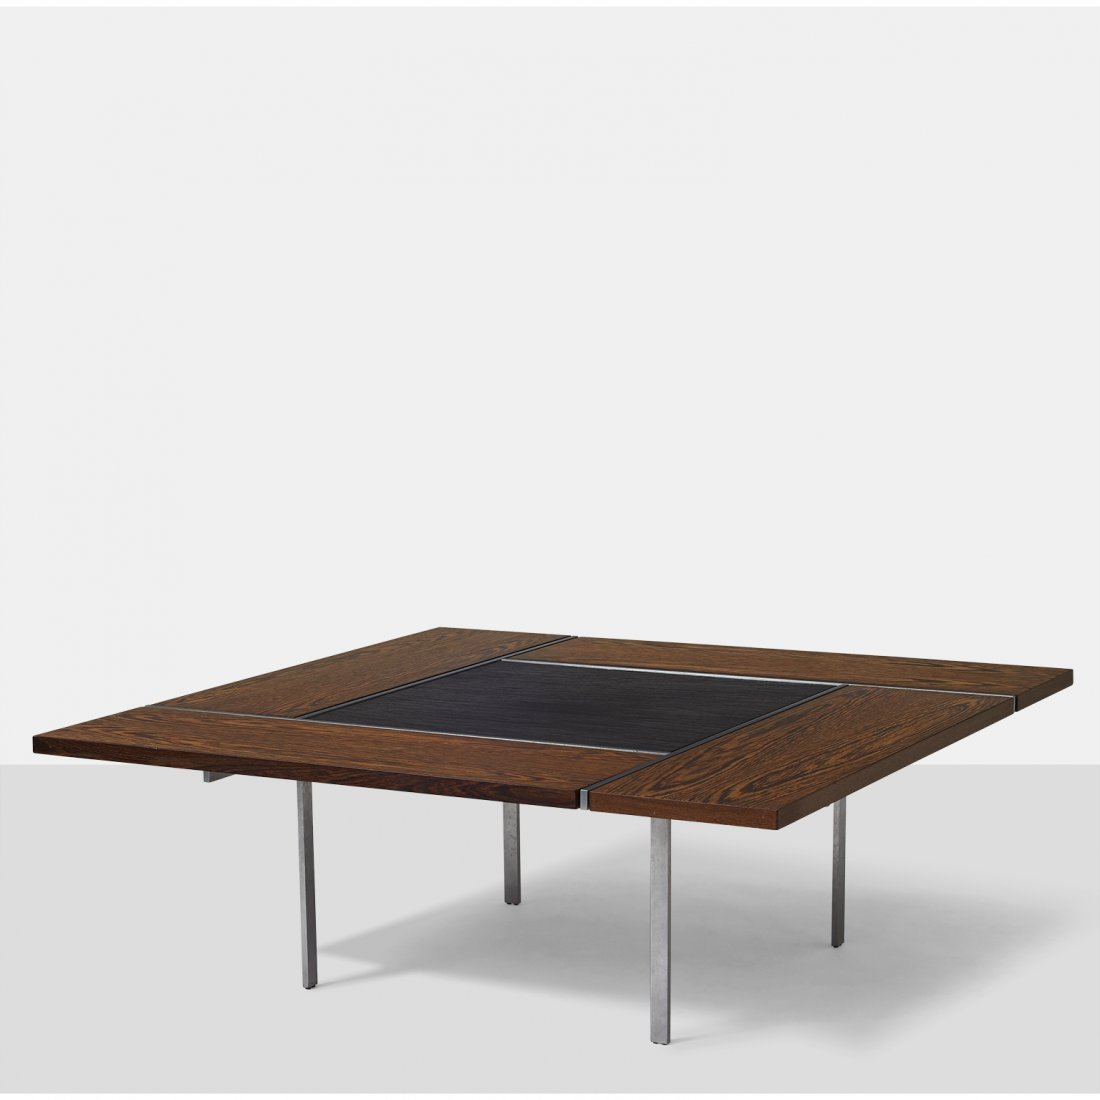 Preben Fabricius and Jorgen Kastholm, Coffee Table